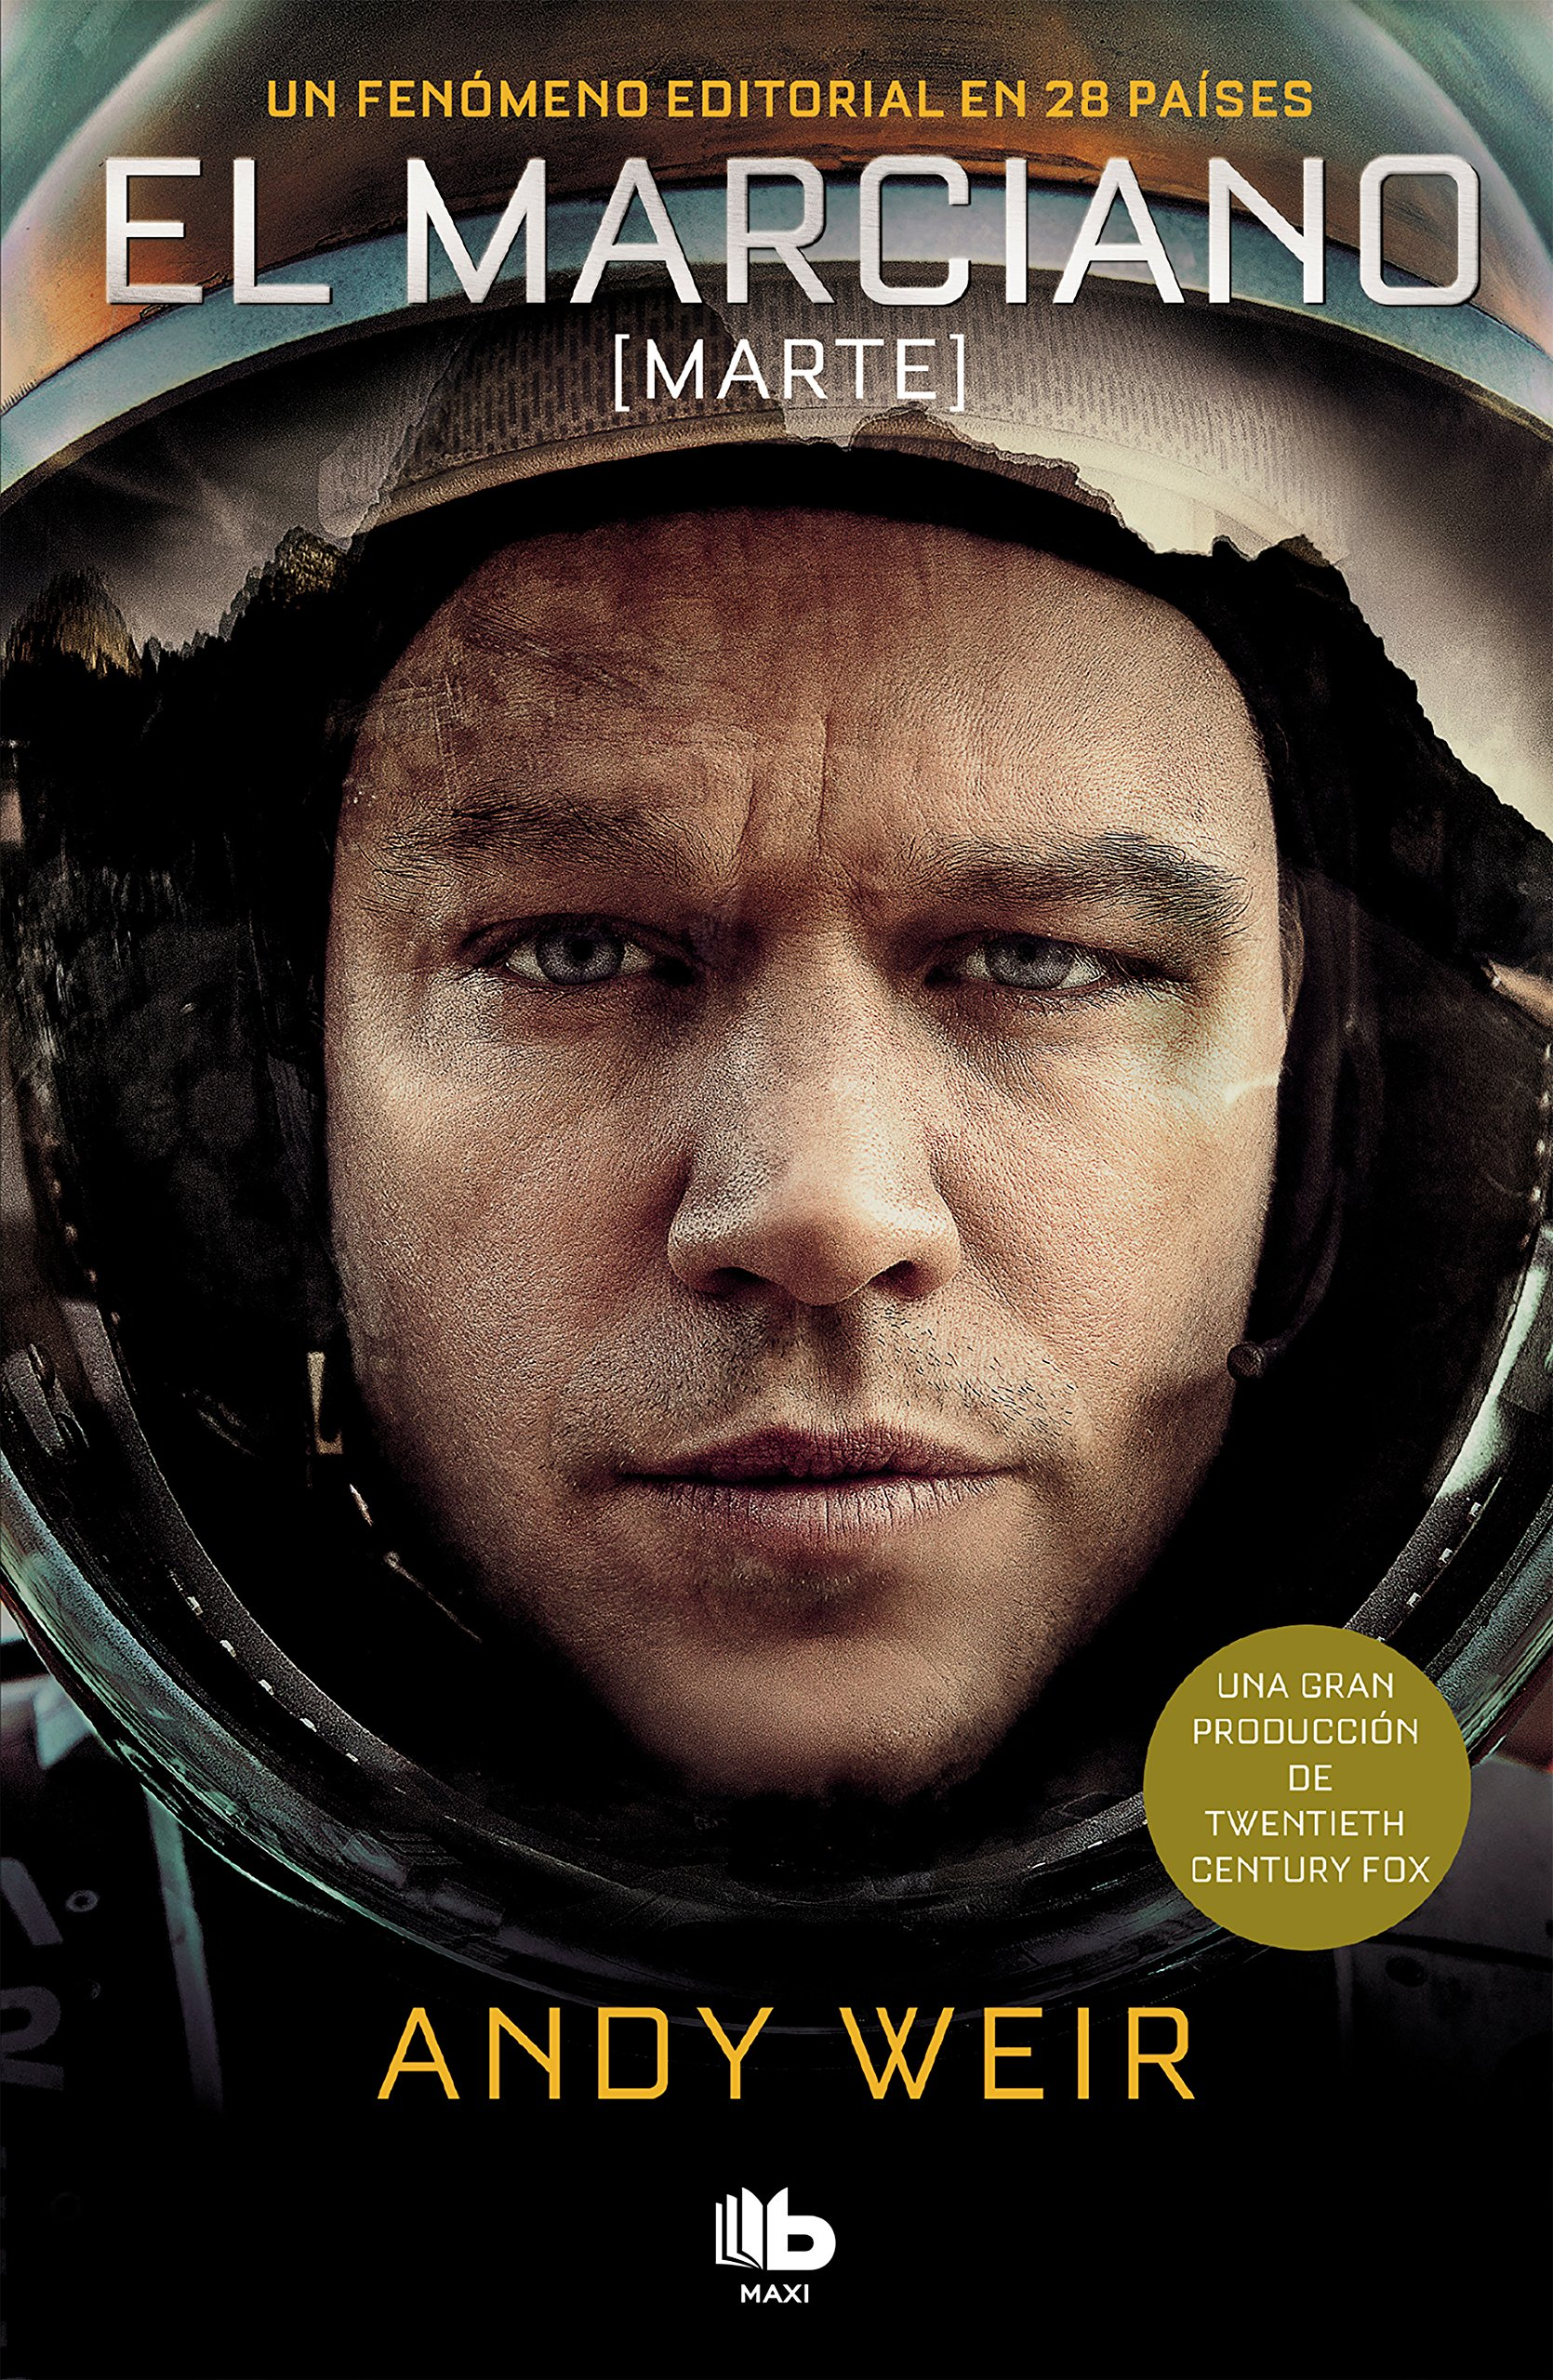 Amazon.com: El marciano / The Martian (Spanish Edition) (9788490705780): Andy Weir: Books